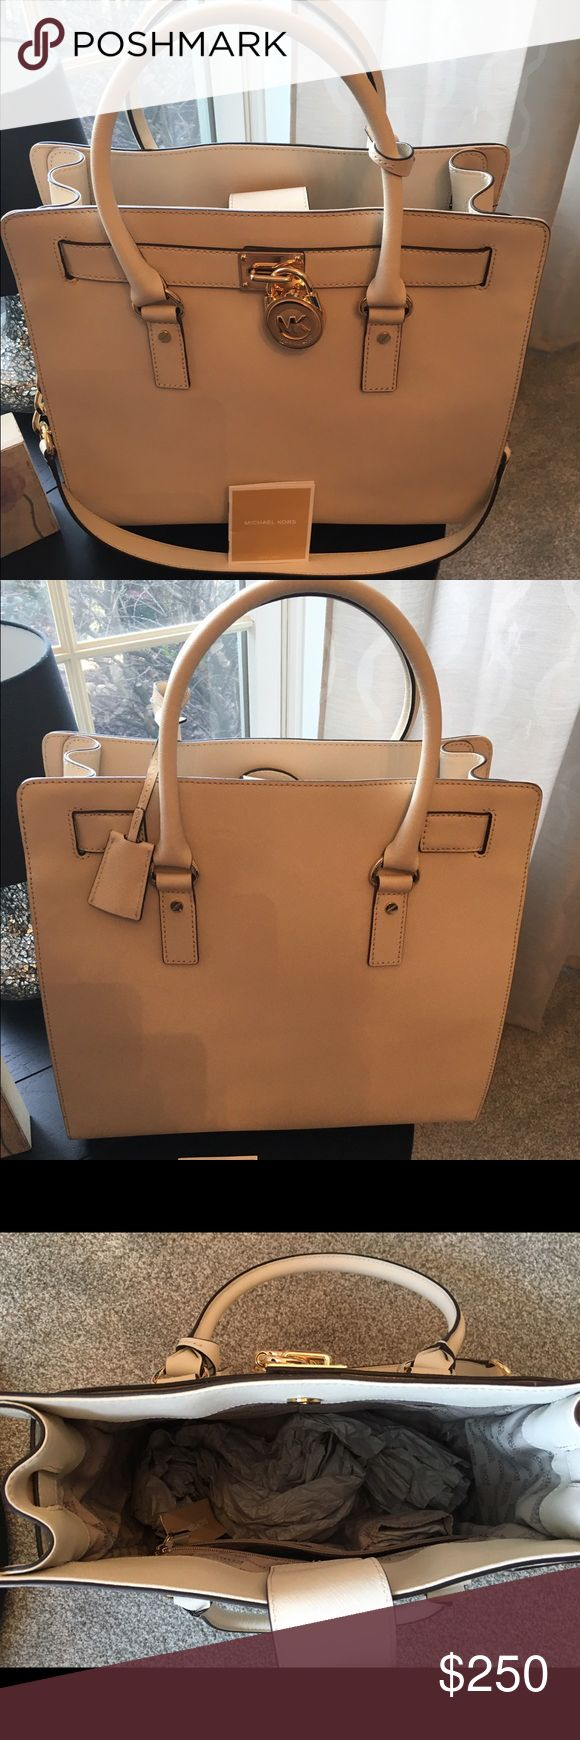 Michael Kors Hamilton traveler bag/ purse. NWT Cream in color with gold chain and emblems ... nice large size bag ... has shoulder strap and handles Michael Kors Bags Shoulder Bags